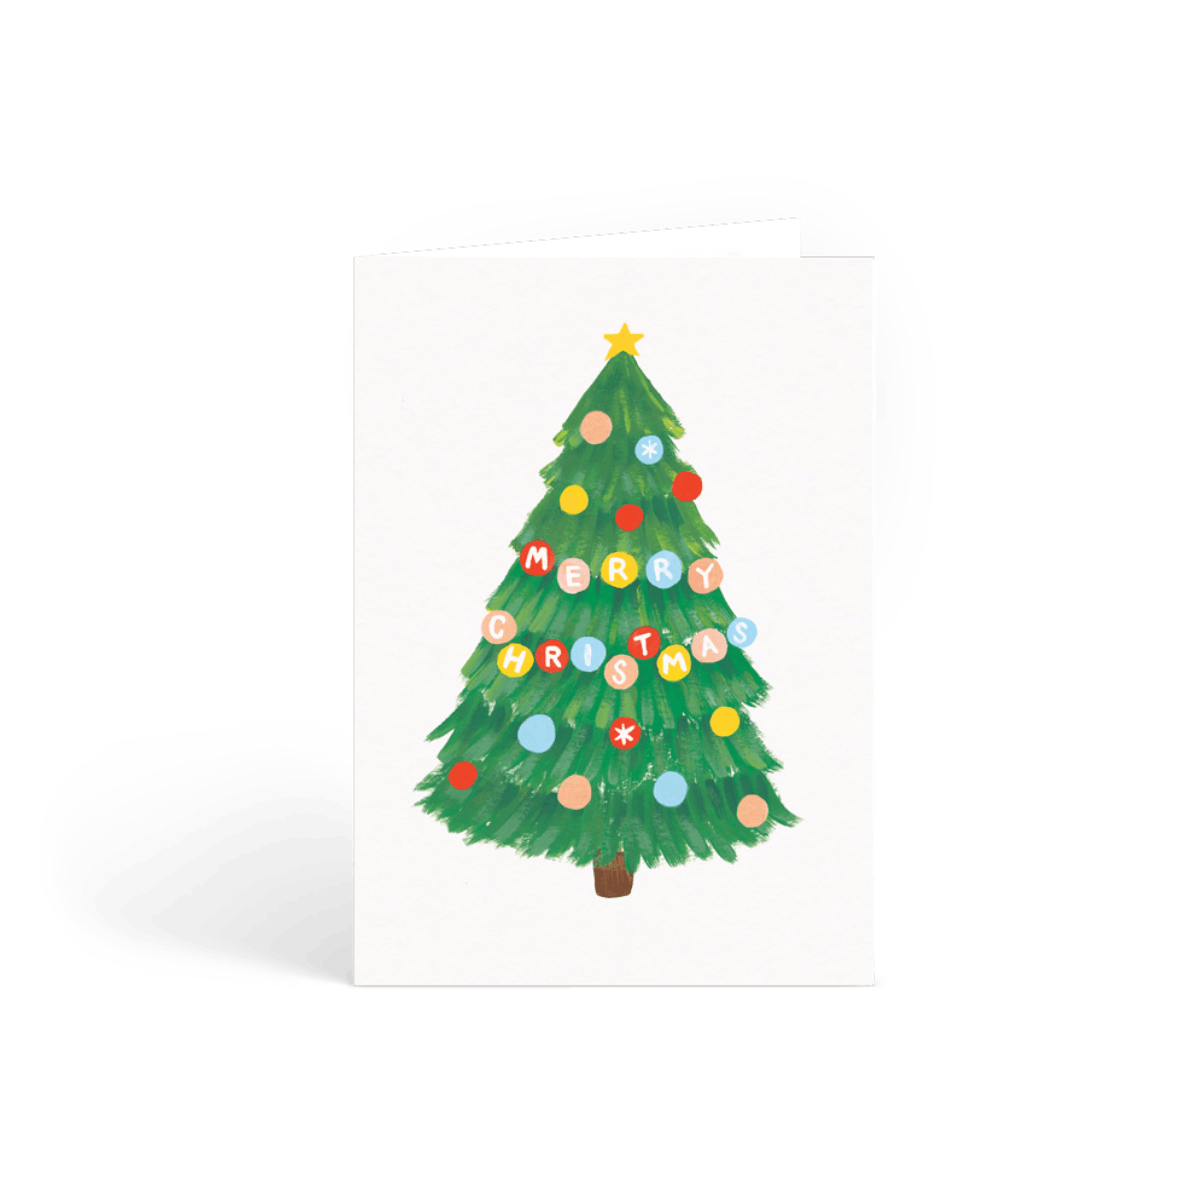 Https%3a%2f%2fwww.papier.com%2fproduct image%2f25360%2f2%2fchristmas tree baubles 6330 front 1499680571.png?ixlib=rb 1.1